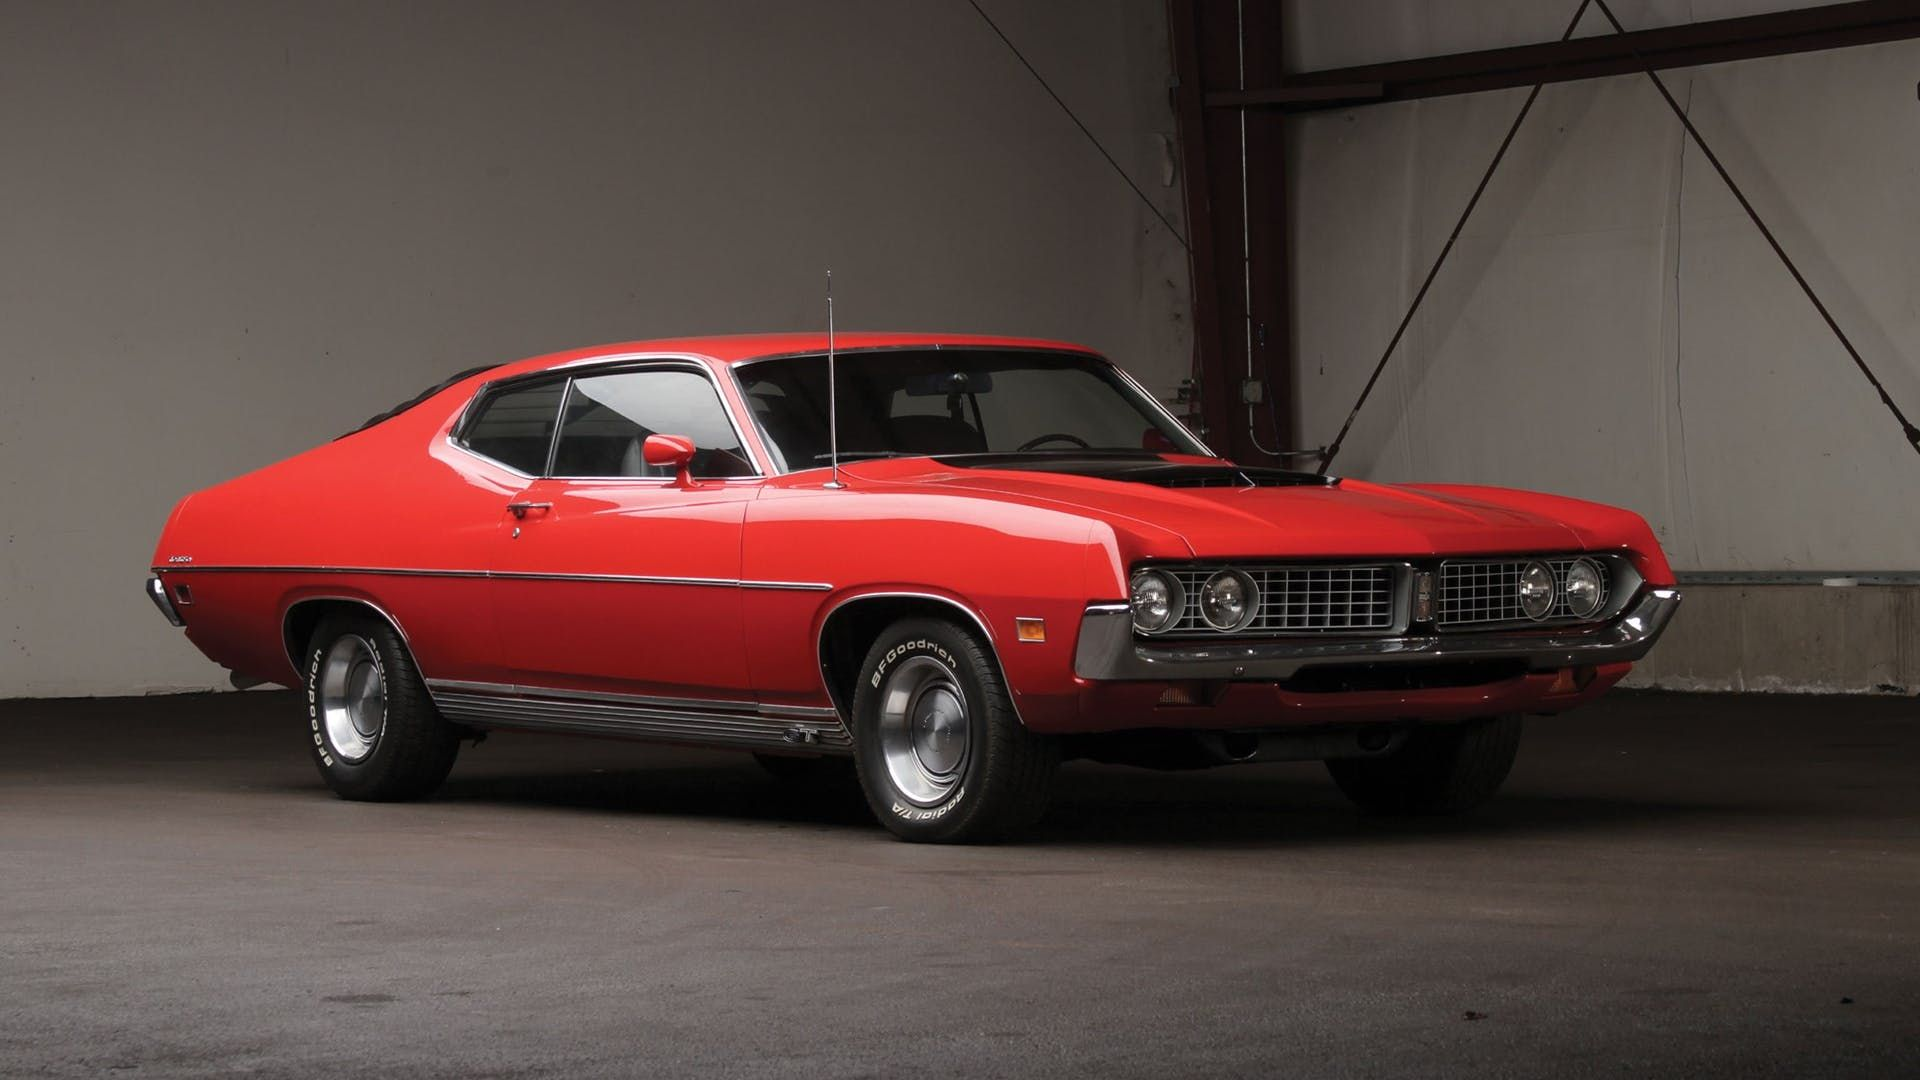 5 Cheap Muscle Cars We'd Be Proud To Own (5 We'd Never Take Out Of The Garage)